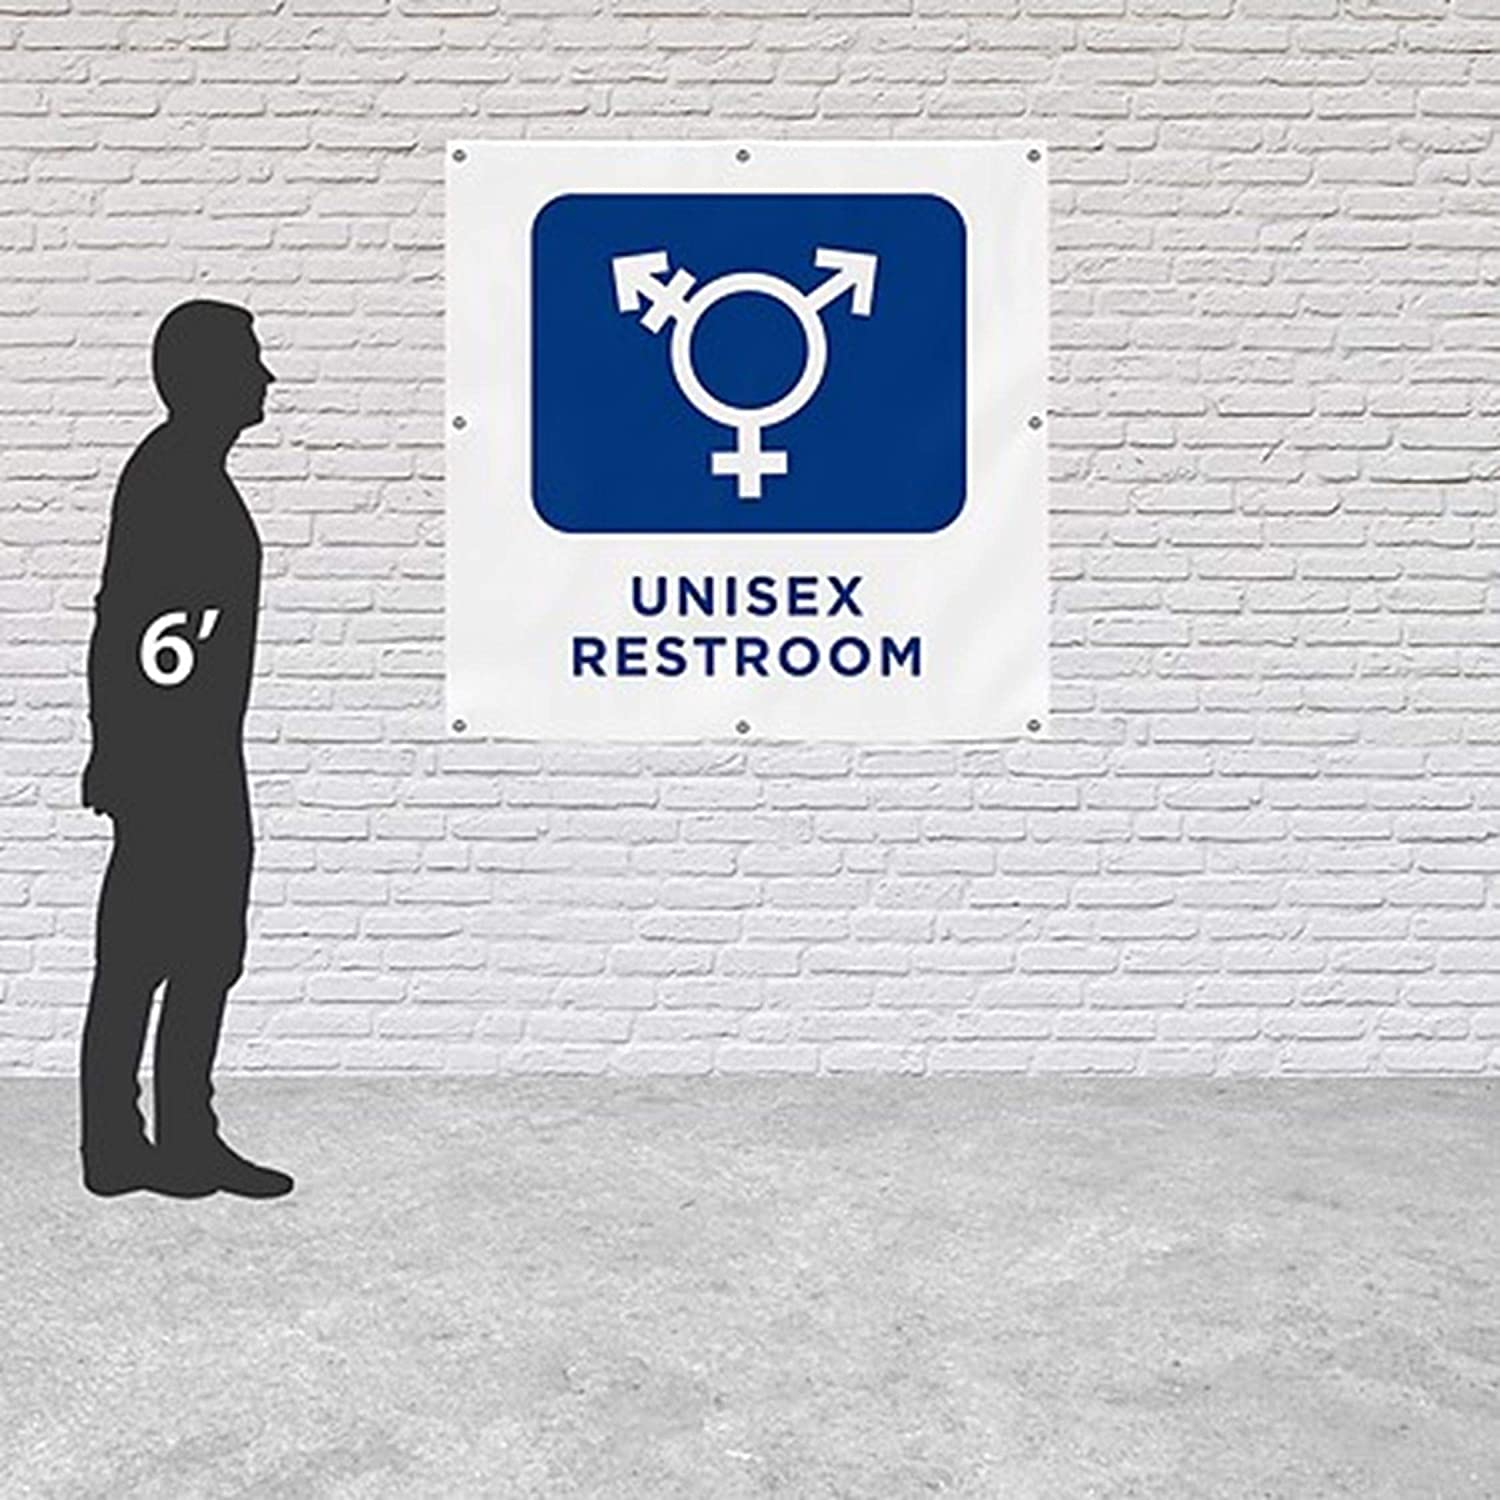 8x8 CGSignLab All-Gender Restroom Sign in Black and White Heavy-Duty Outdoor Vinyl Banner